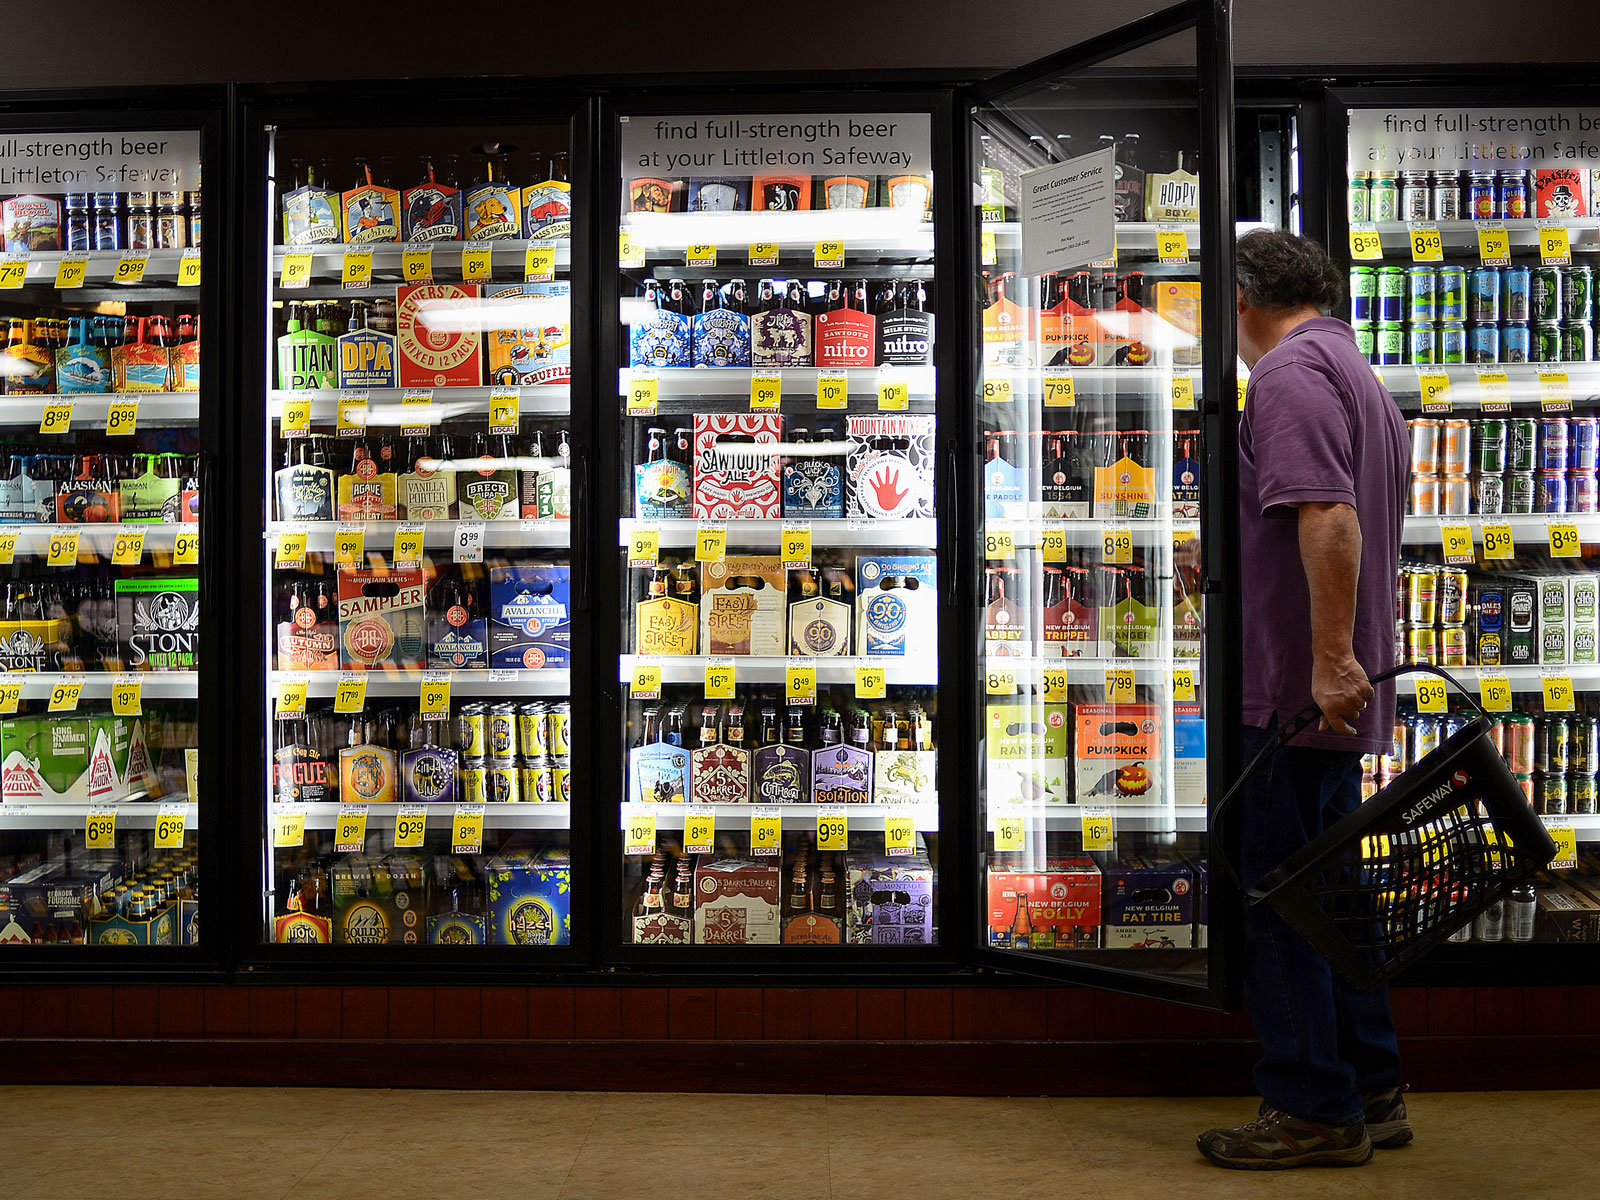 America's Biggest Beer Company Is Beating Craft Brewers at Their Own Game